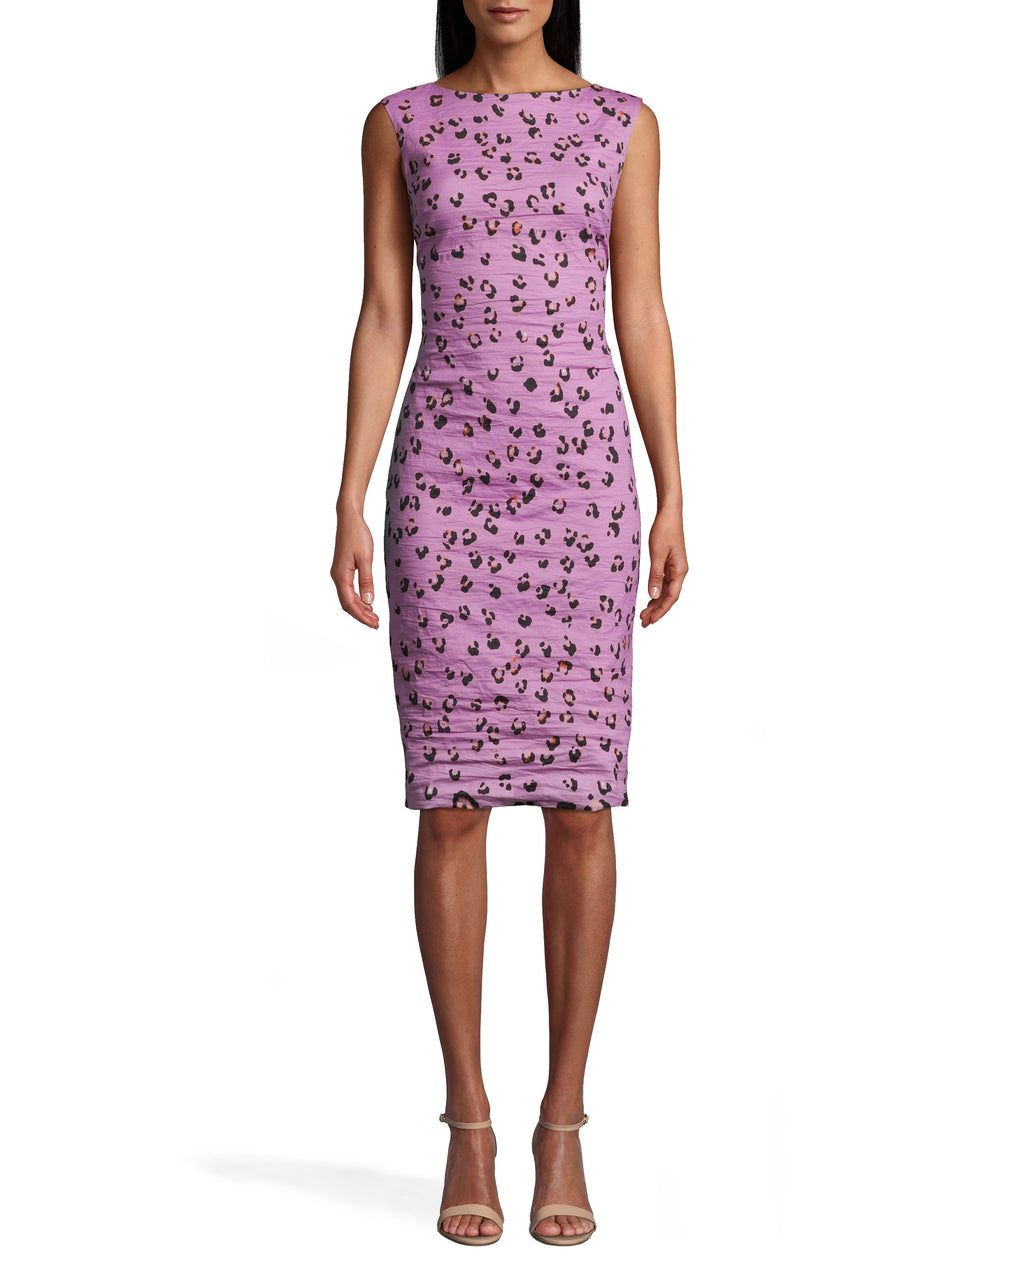 CD10102 - LILAC LEOPARD MIDI DRESS - dresses - midi - OUR ICONIC COTTON METAL IS REIMAGINED IN A LILAC LEOPARD PRINT. THIS CHIC SLEEVELESS SILHOUETTE HITS JUST ABOVE THE KNEE. BACK ZIPPER FOR CLOSURE. Add 1 line break STYLIST TIP: WEAR WITH NUDE SHOES AND STATEMENT EARRINGS.